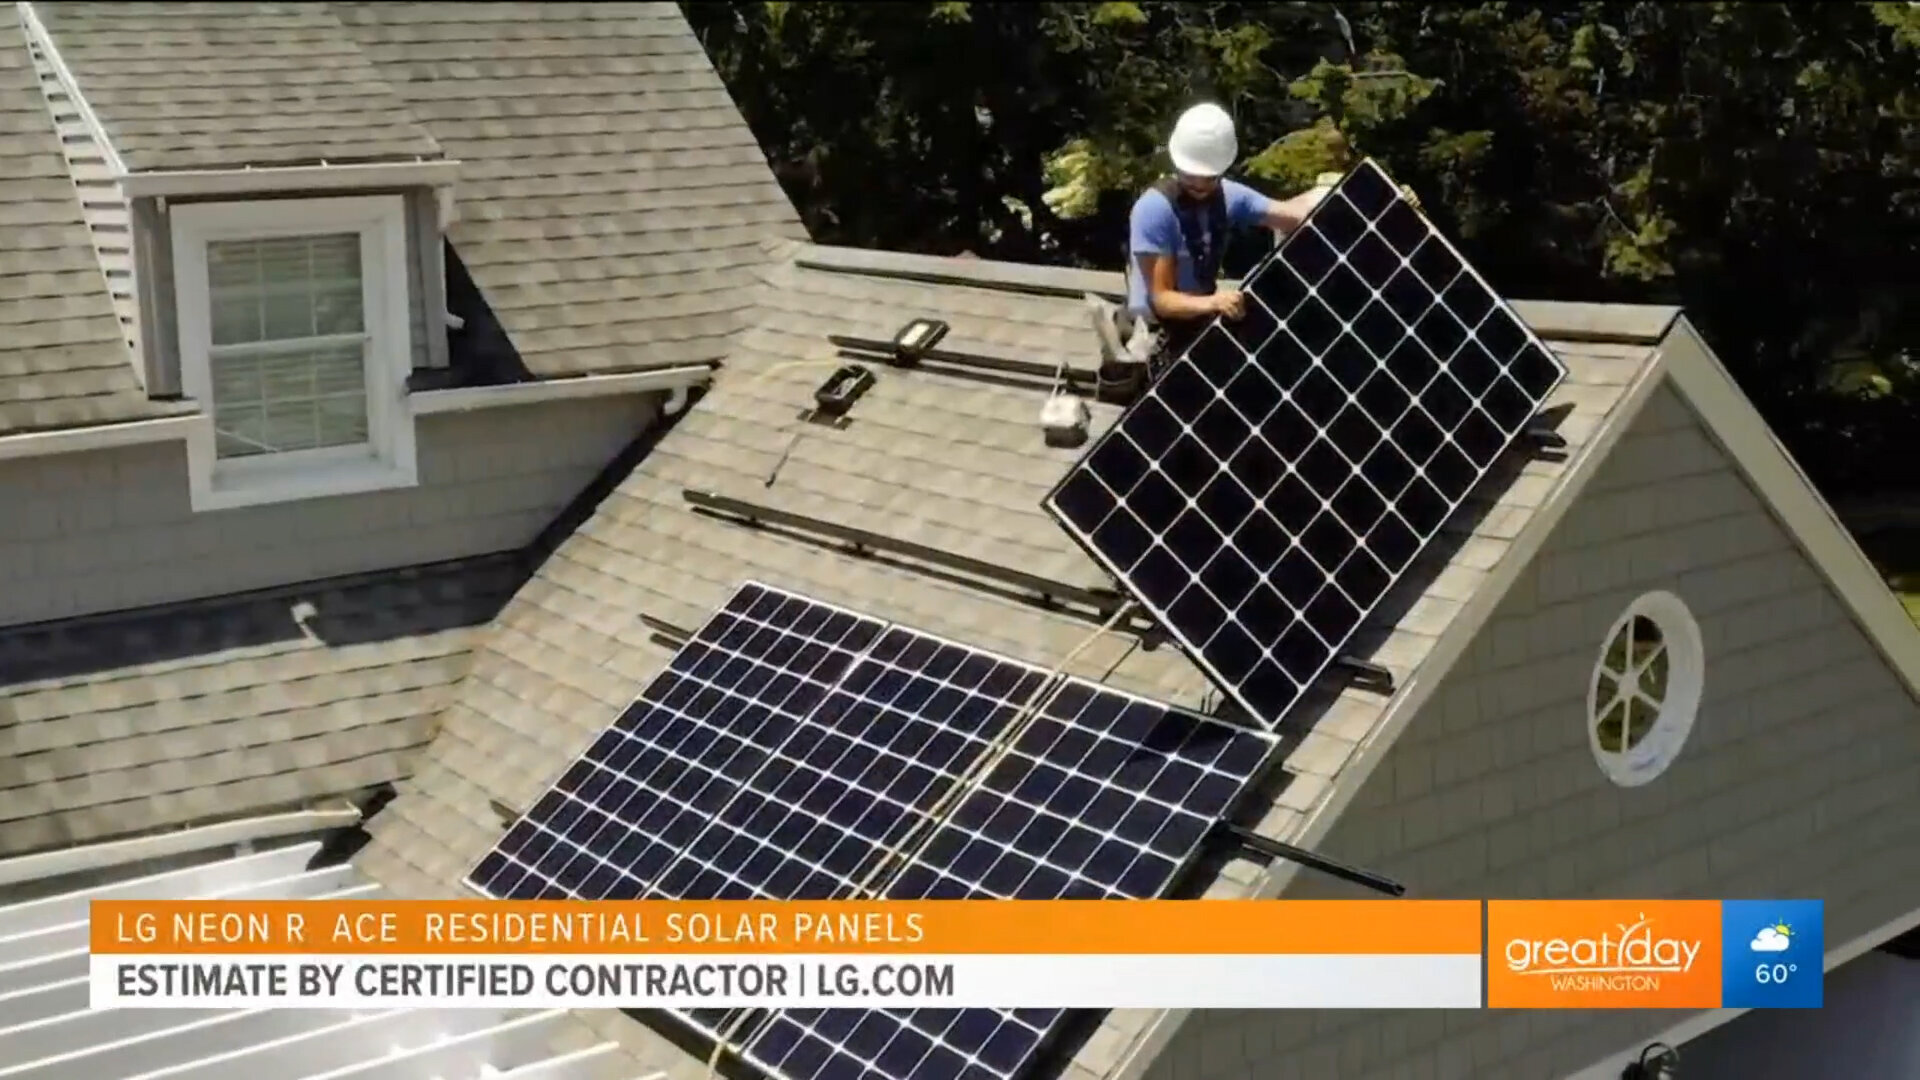 LG NeON R aCE RESIDENTIAL SOLAR PANELS - Estimate by Certified ContractorShop Now